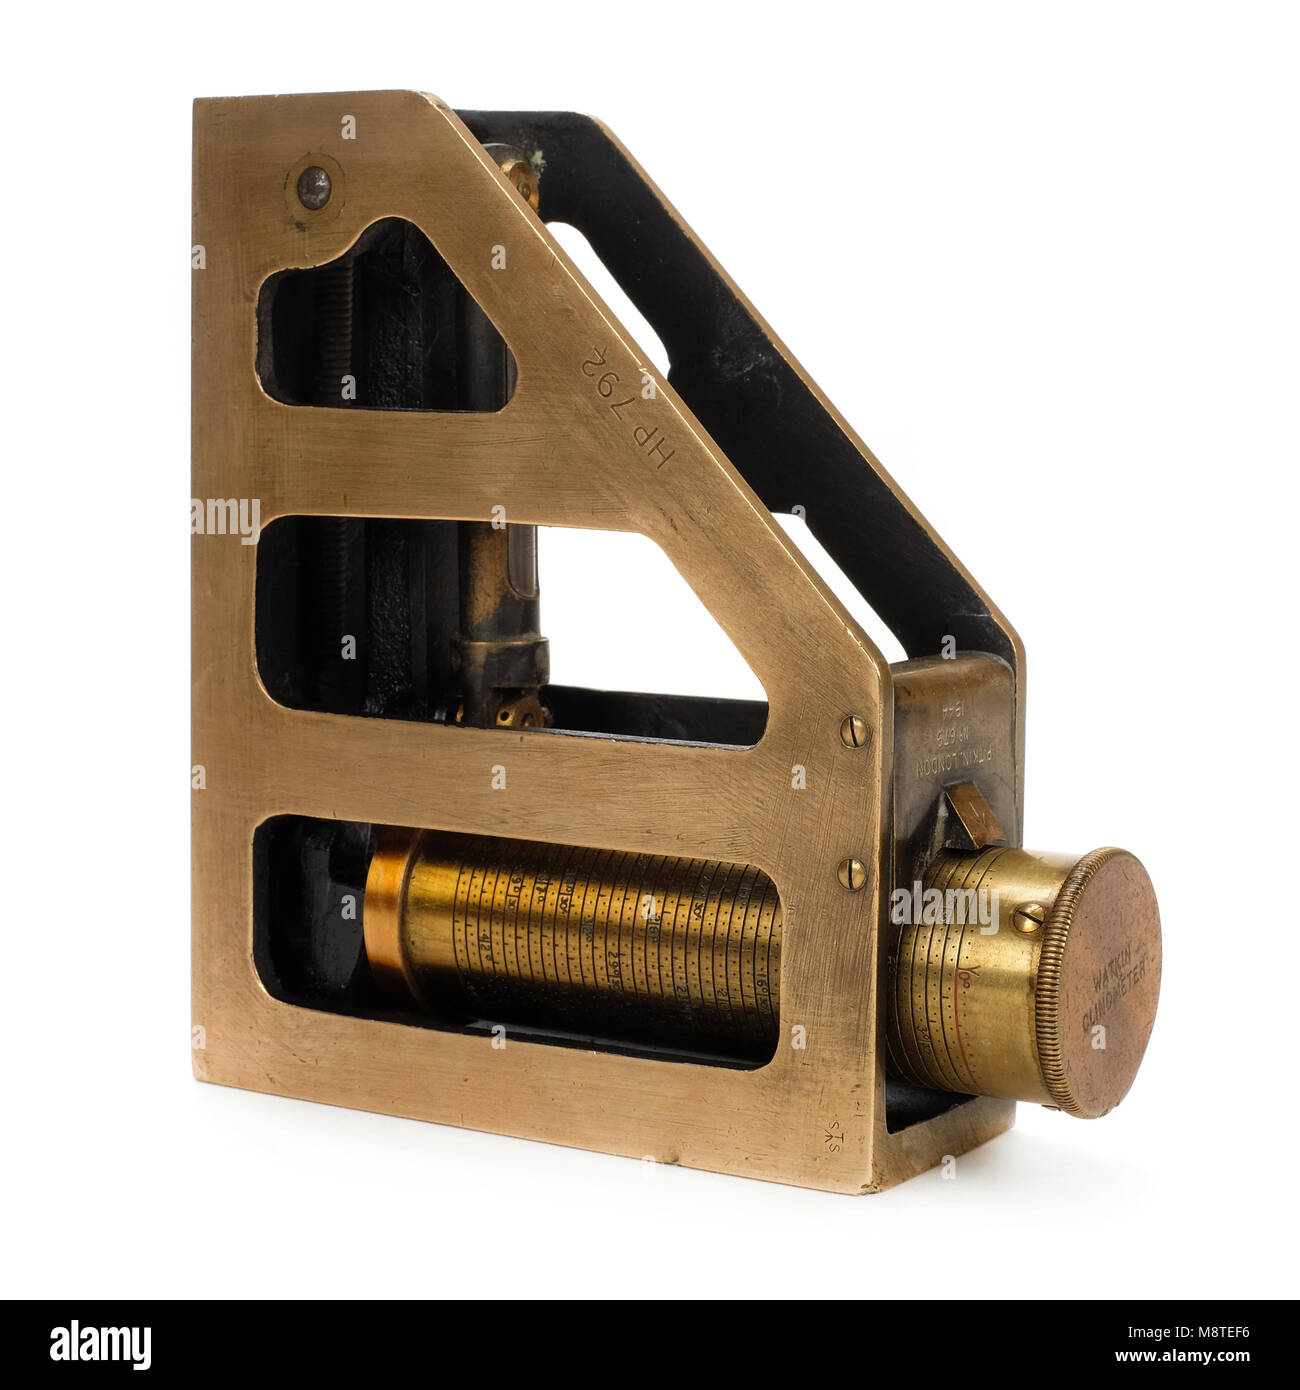 WW2 British War Department Watkin Clinometer made by Pitkin Ltd of London in 1944 and marked No 679 - Stock Image